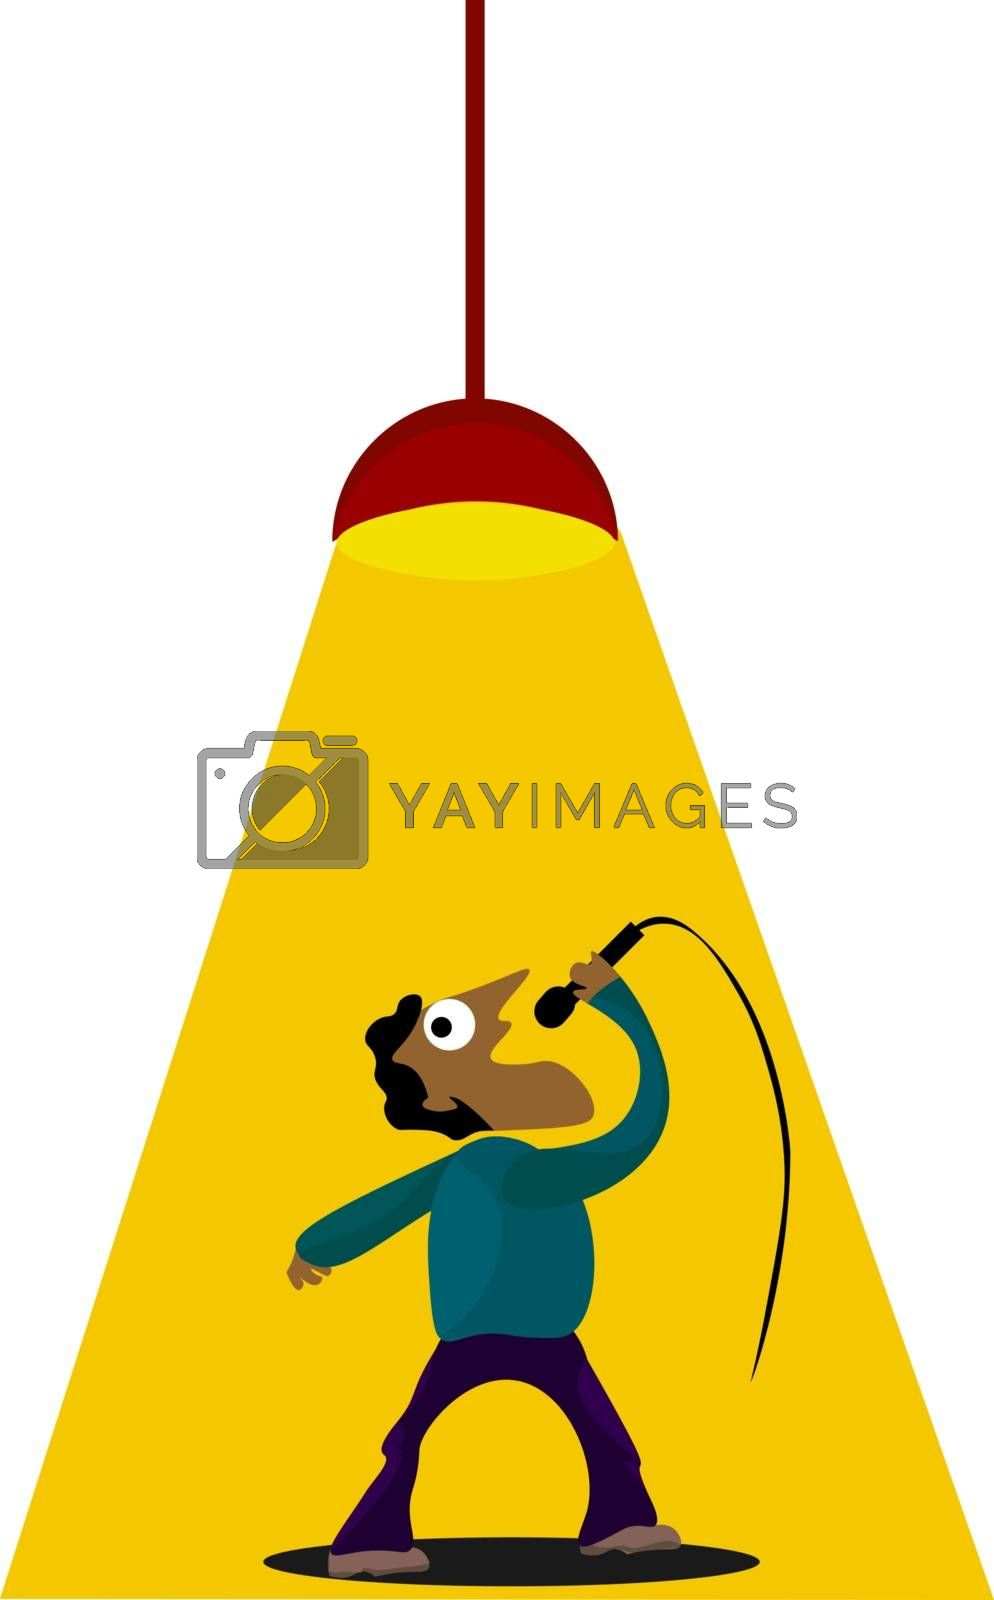 Royalty free image of Clipart of a singer stage performance  vector or color illustrat by Morphart